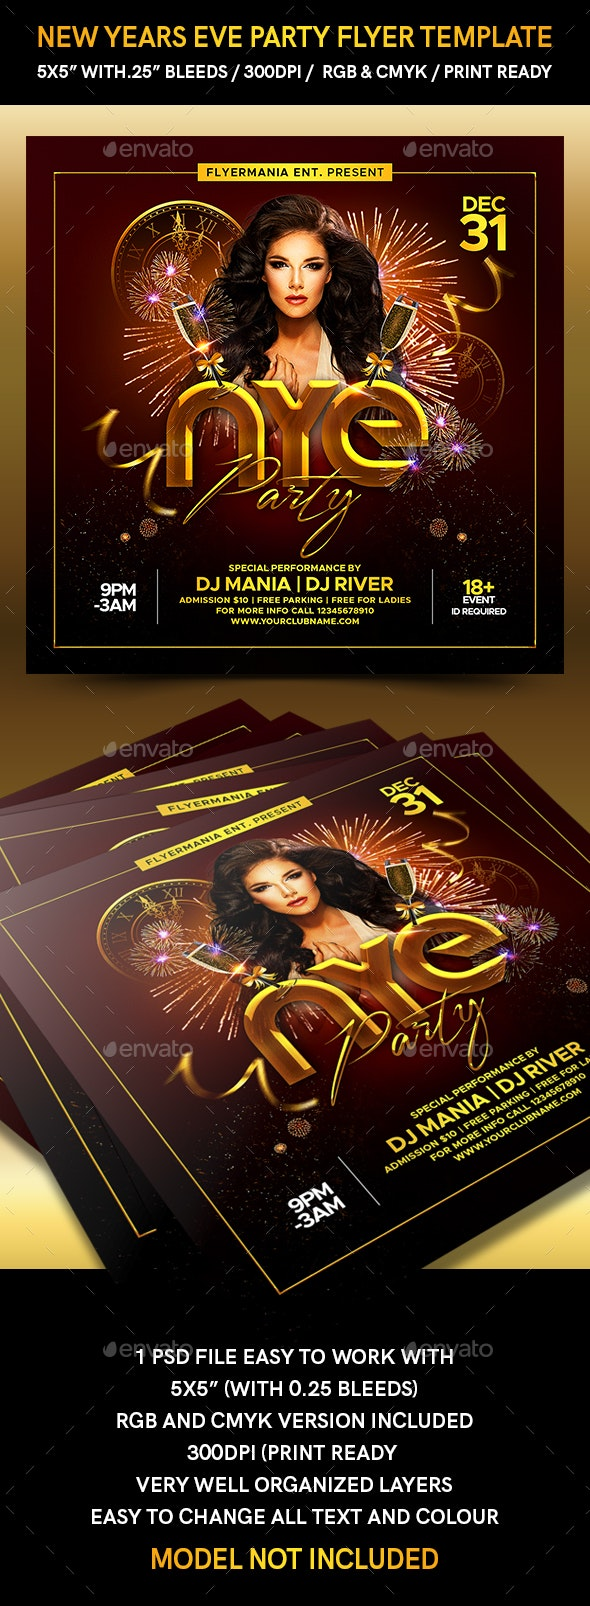 New Years Eve Party Flyer Template - Flyers Print Templates